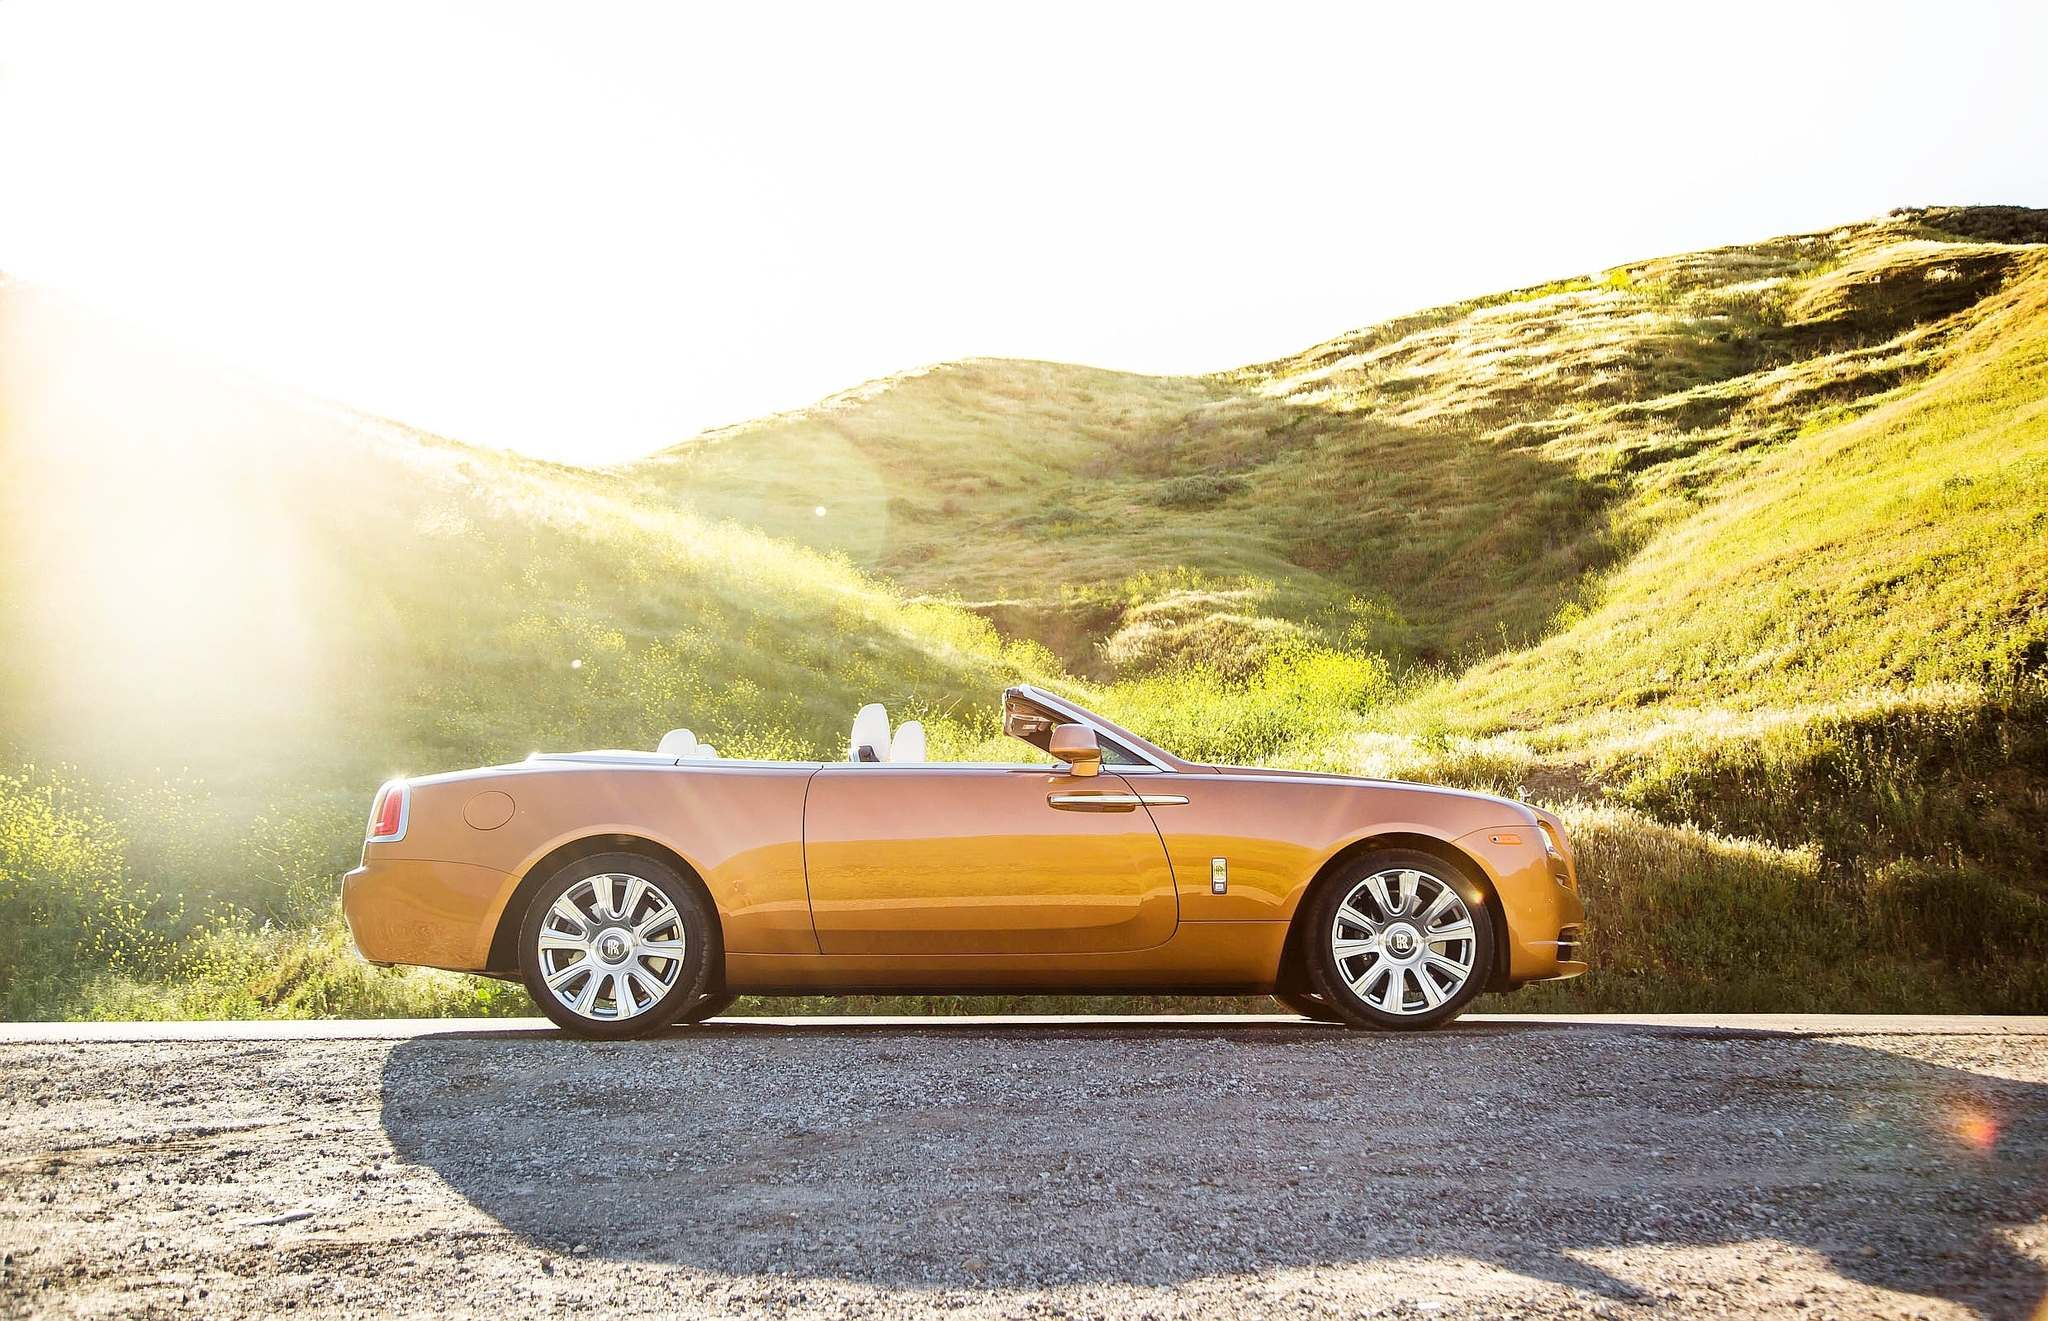 SUBMITTED PHOTO Rolls-Royce eschews the crease-lines many automakers use to add drama to their cars silhouettes and instead create a nearly organic shape, and a sporty-looking luxury car.